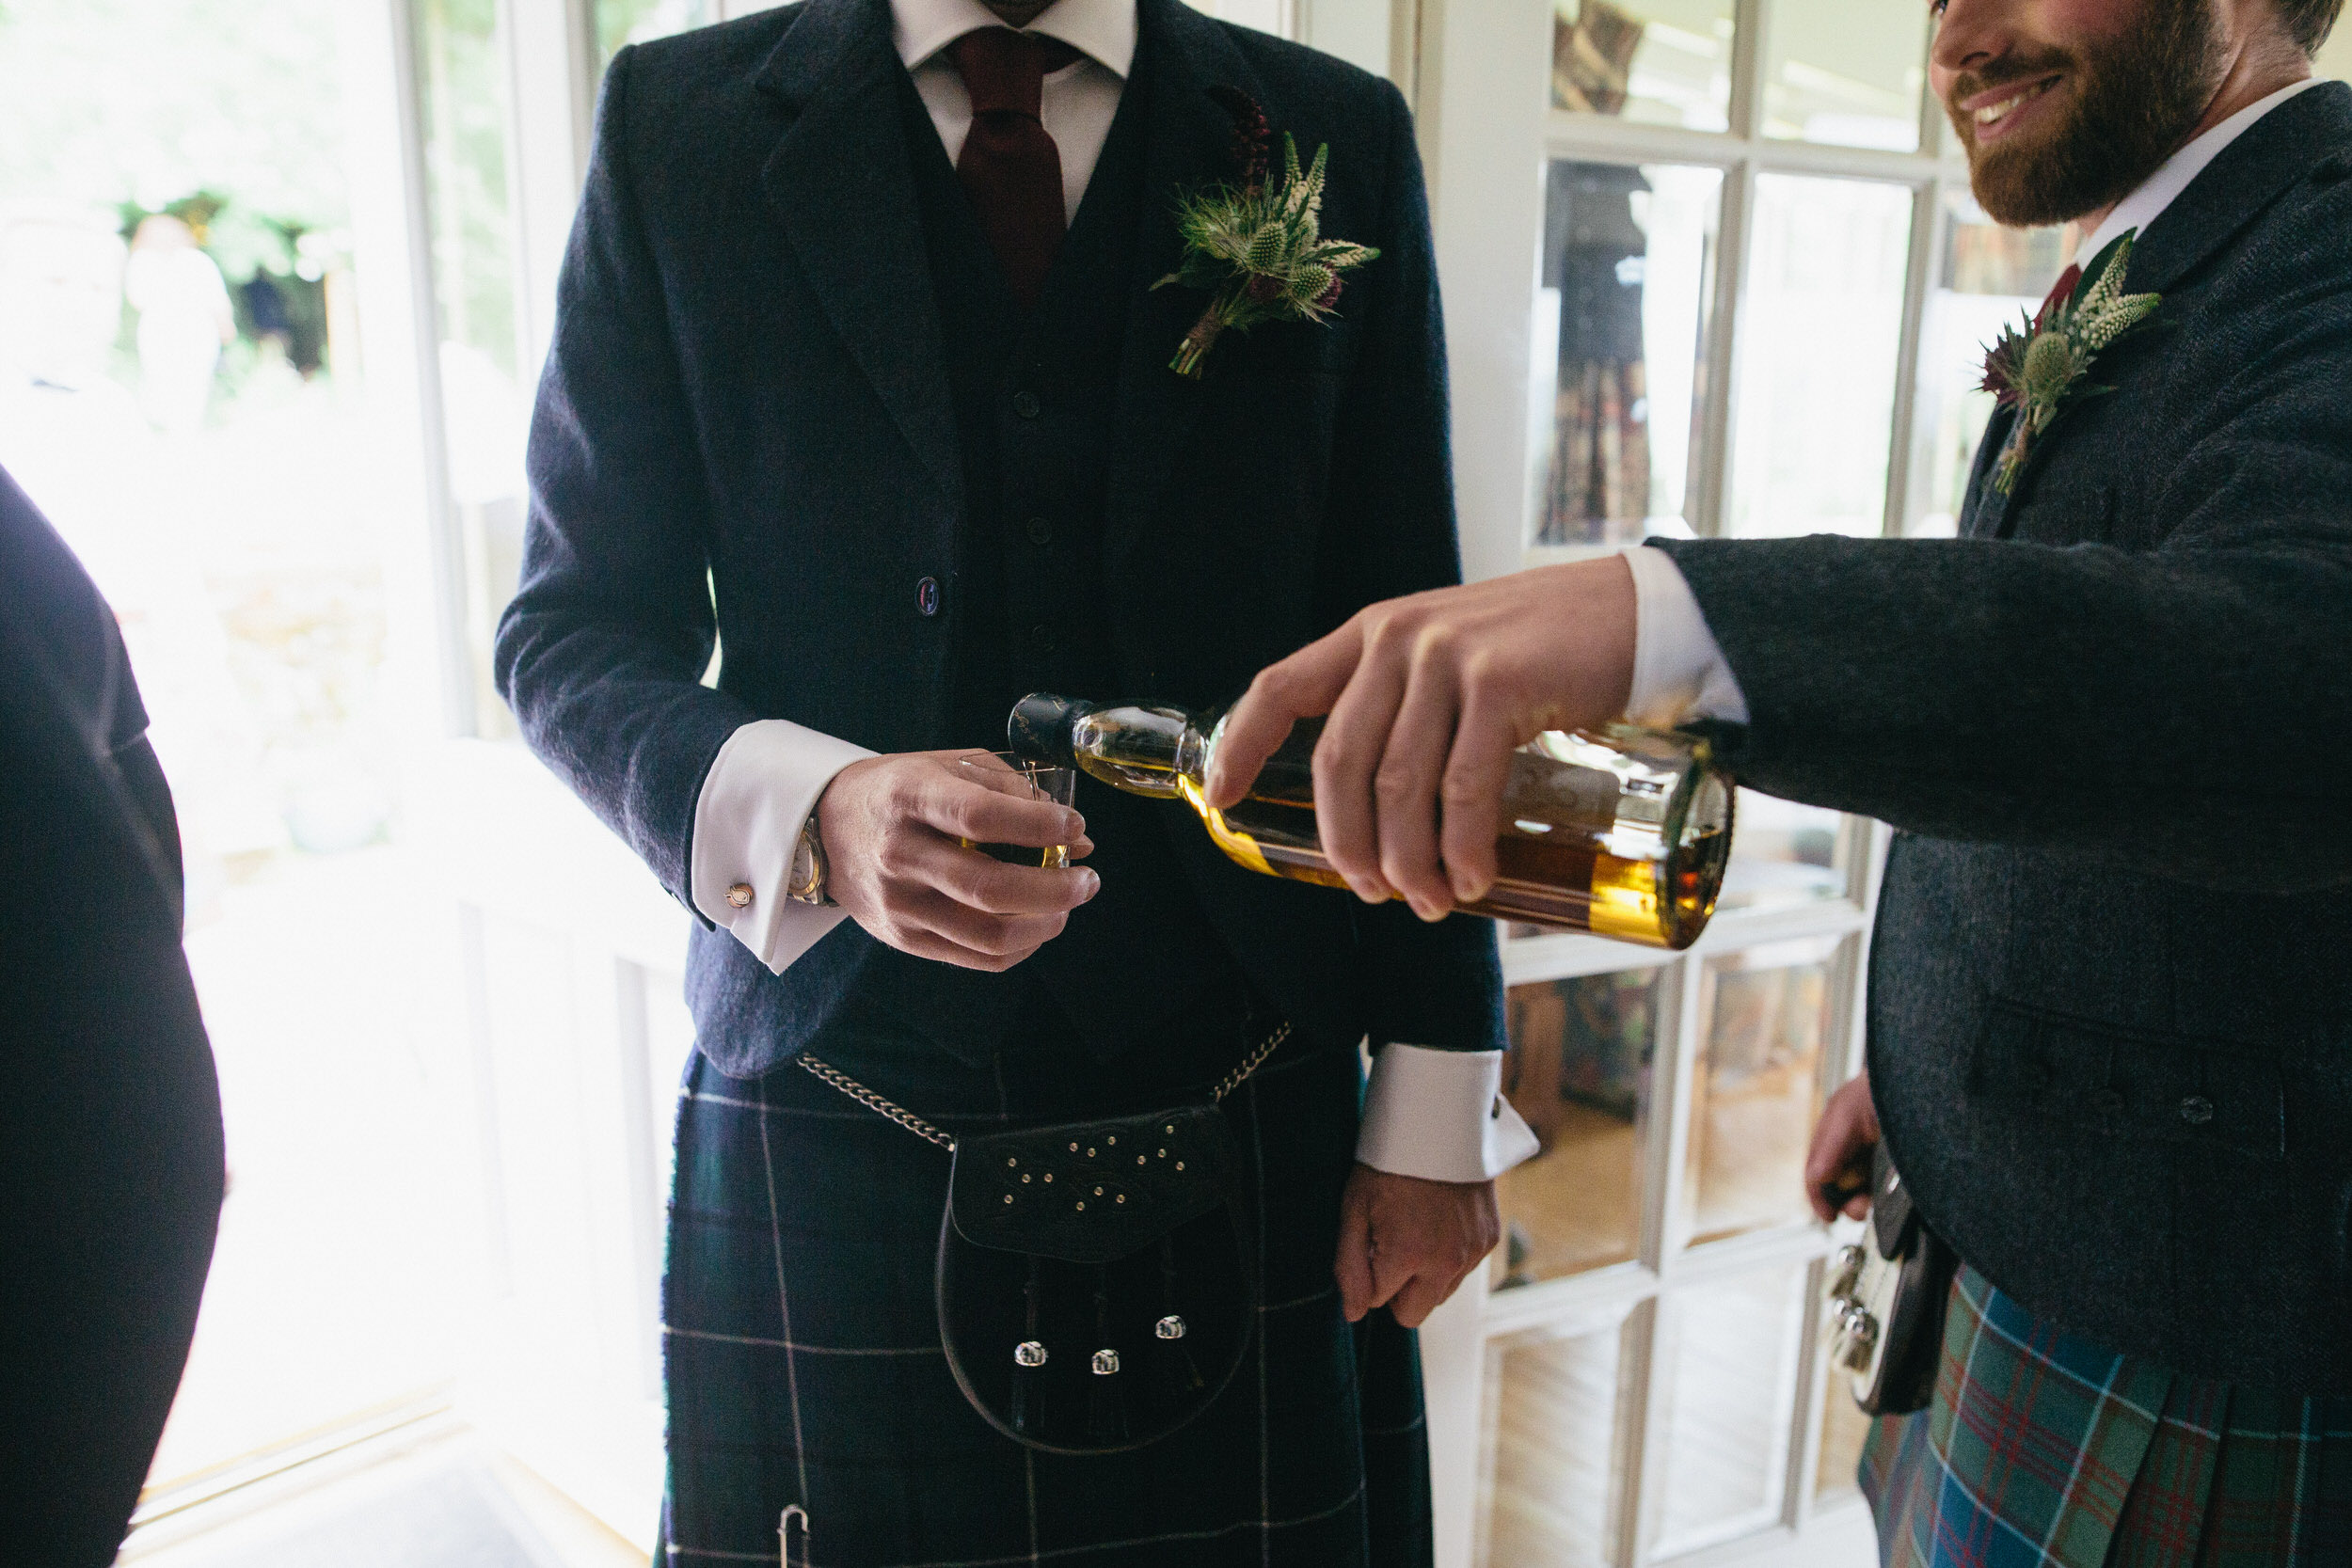 Alternative Quirky Wedding Photographer Scotland Borders Edinburgh 003.jpg